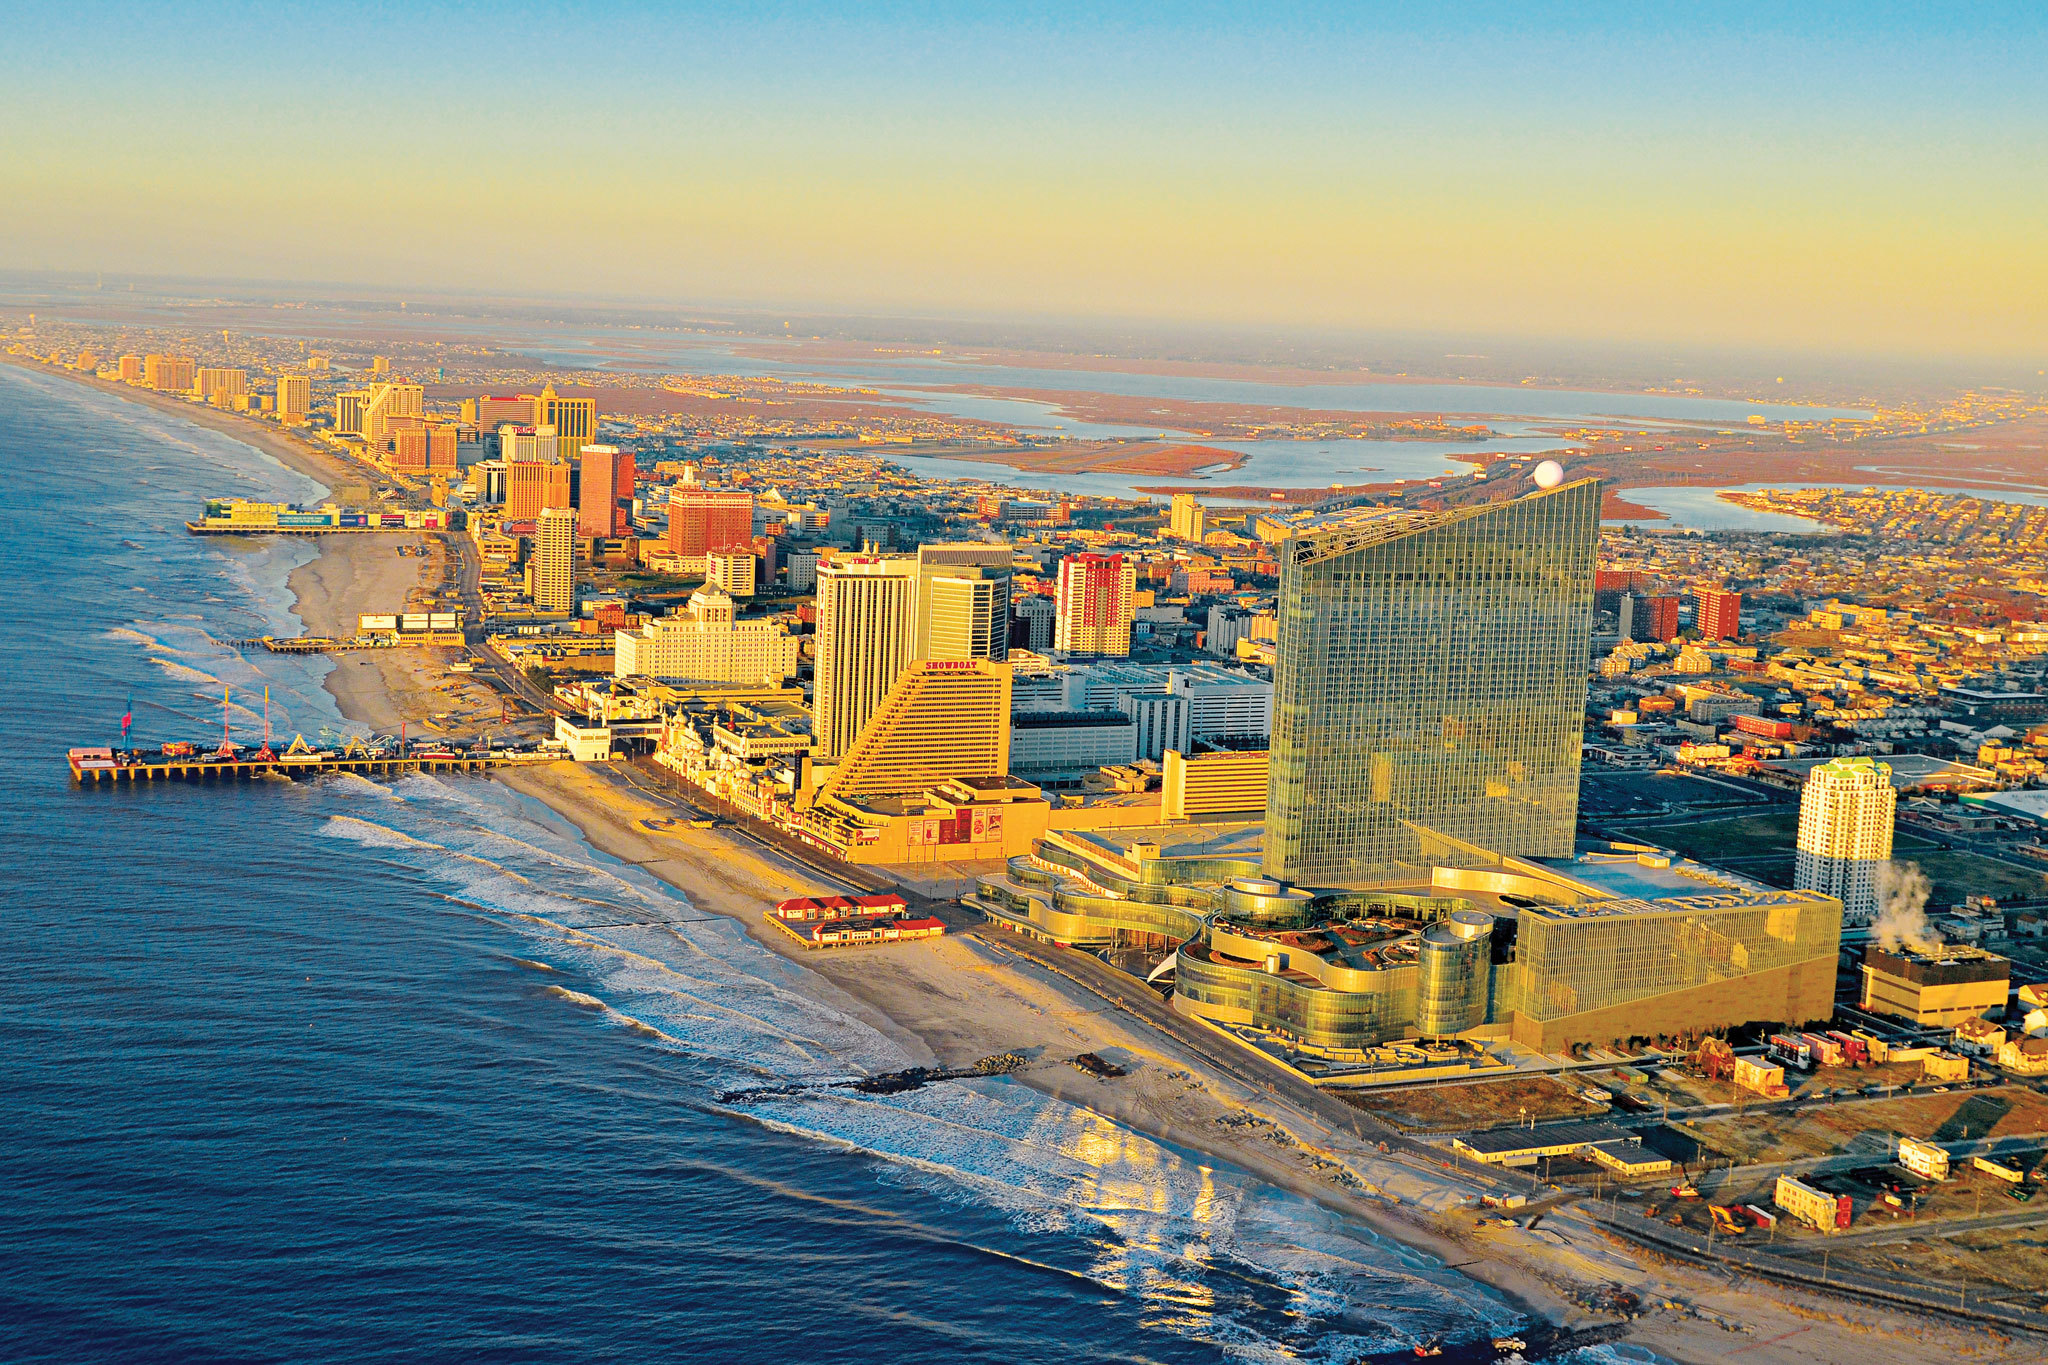 The #1 Best Value of 56 places to stay in Atlantic City. Free Wifi. Pool. Special offer. Hotel website. Caesars Atlantic City. Show Prices. #2 Best Value of 56 places to stay in Atlantic City. Free Wifi. Beachfront. Special offer. Hotel website. Resorts Casino Hotel. Show Prices. 77, reviews. #3 Best Value of 56 places to stay in Atlantic City.